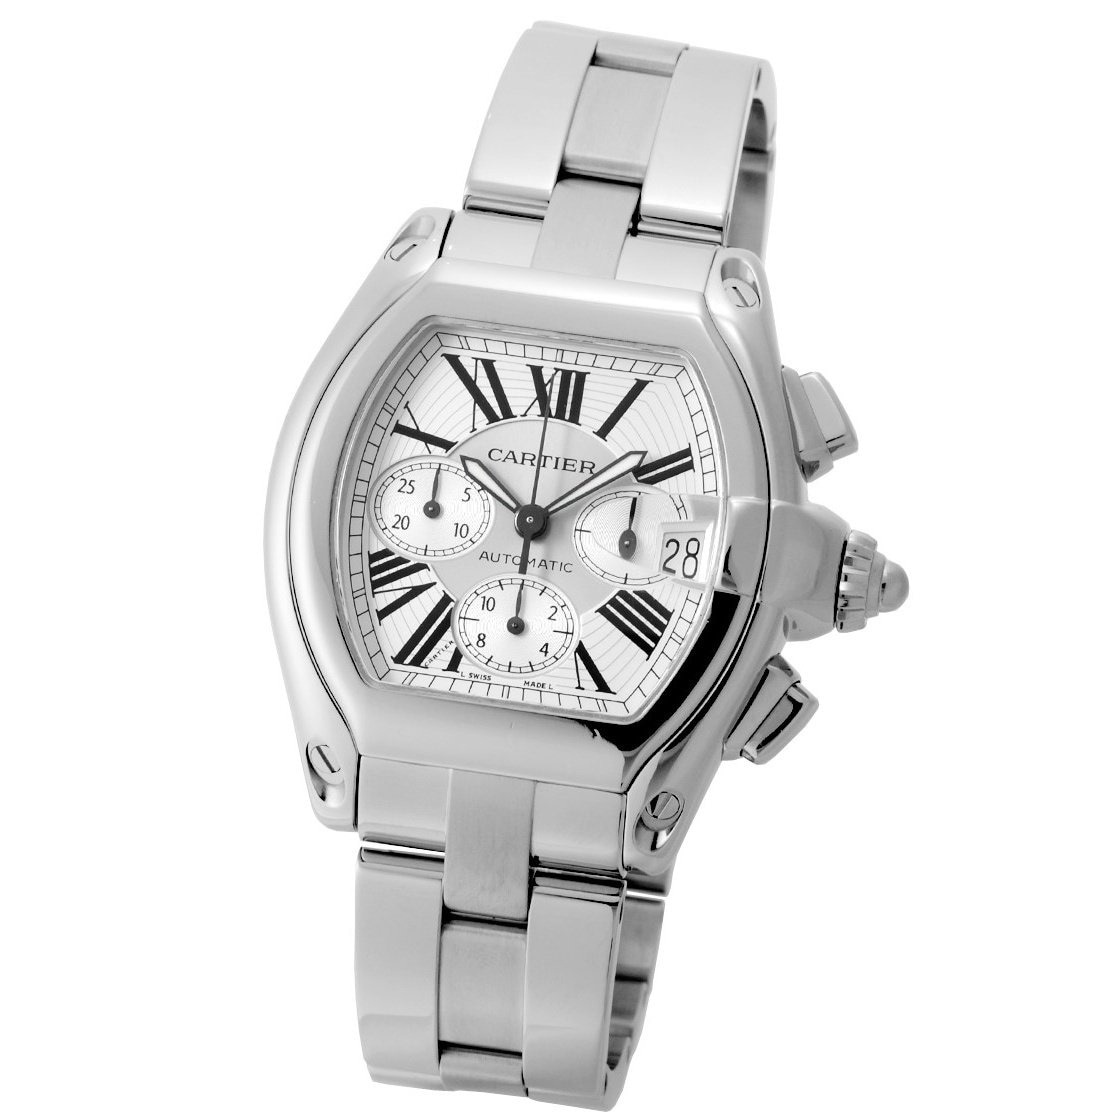 Cartier Watches Cartier Men S W62019x6 Roadster Chronograph Automatic Stainless Steel Watch